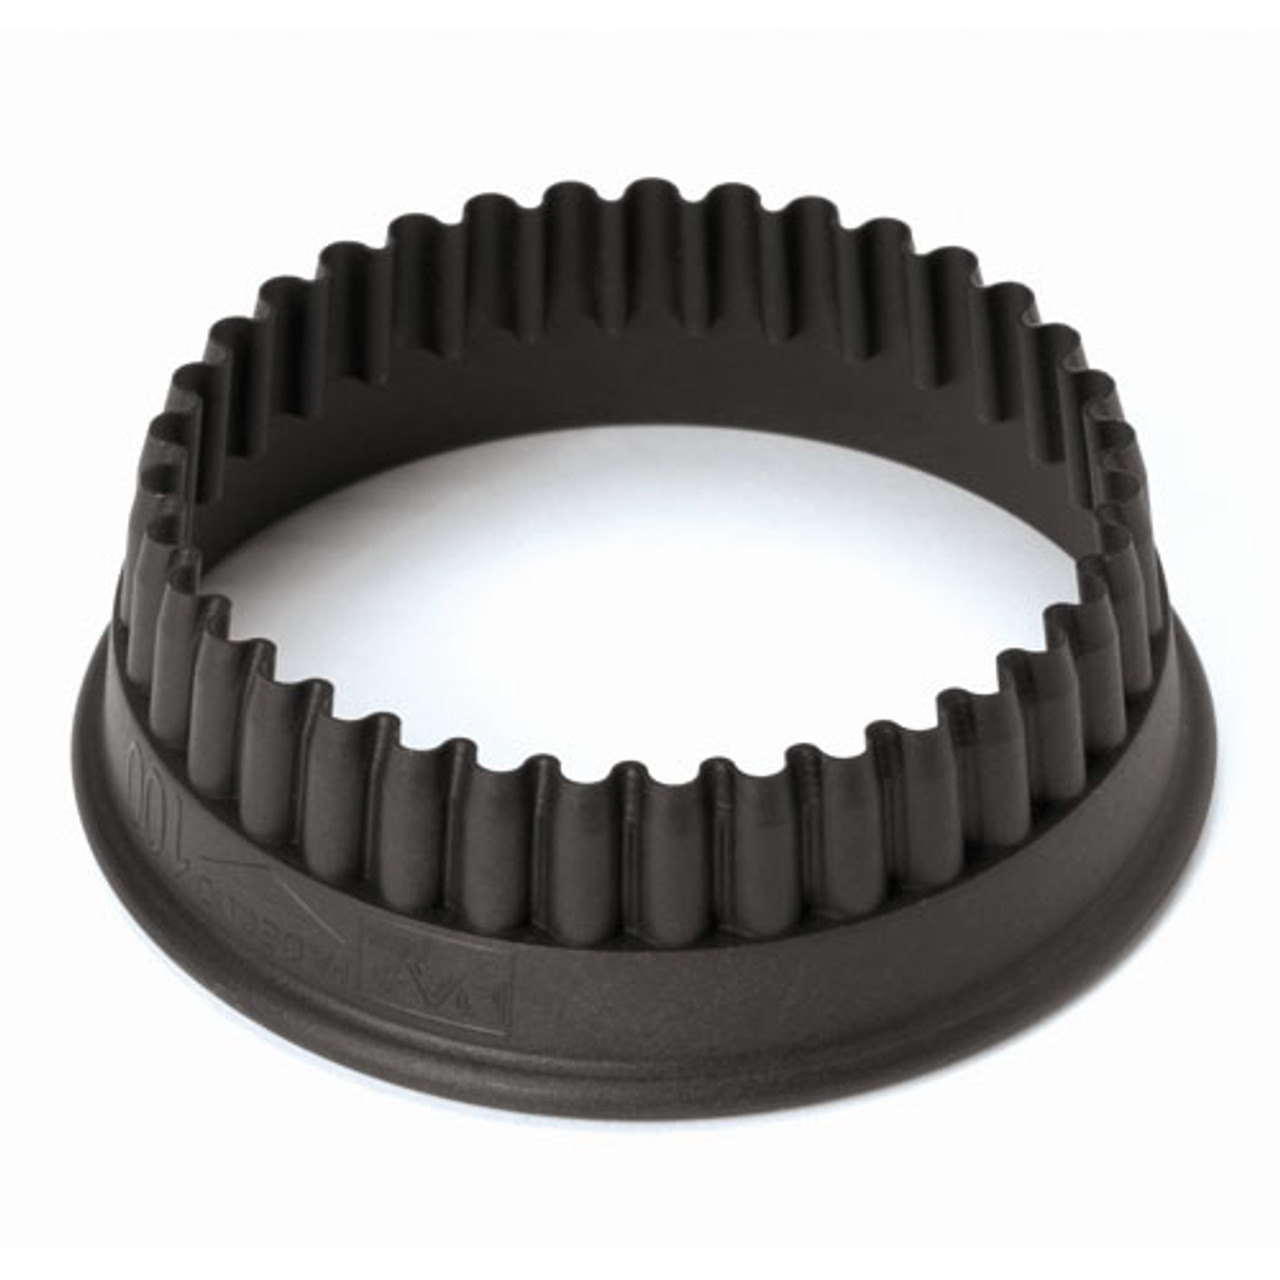 3 1/8 Fluted Round PA+  Cookie Cutter, L 3.125 x W 3.125 x H 1.375